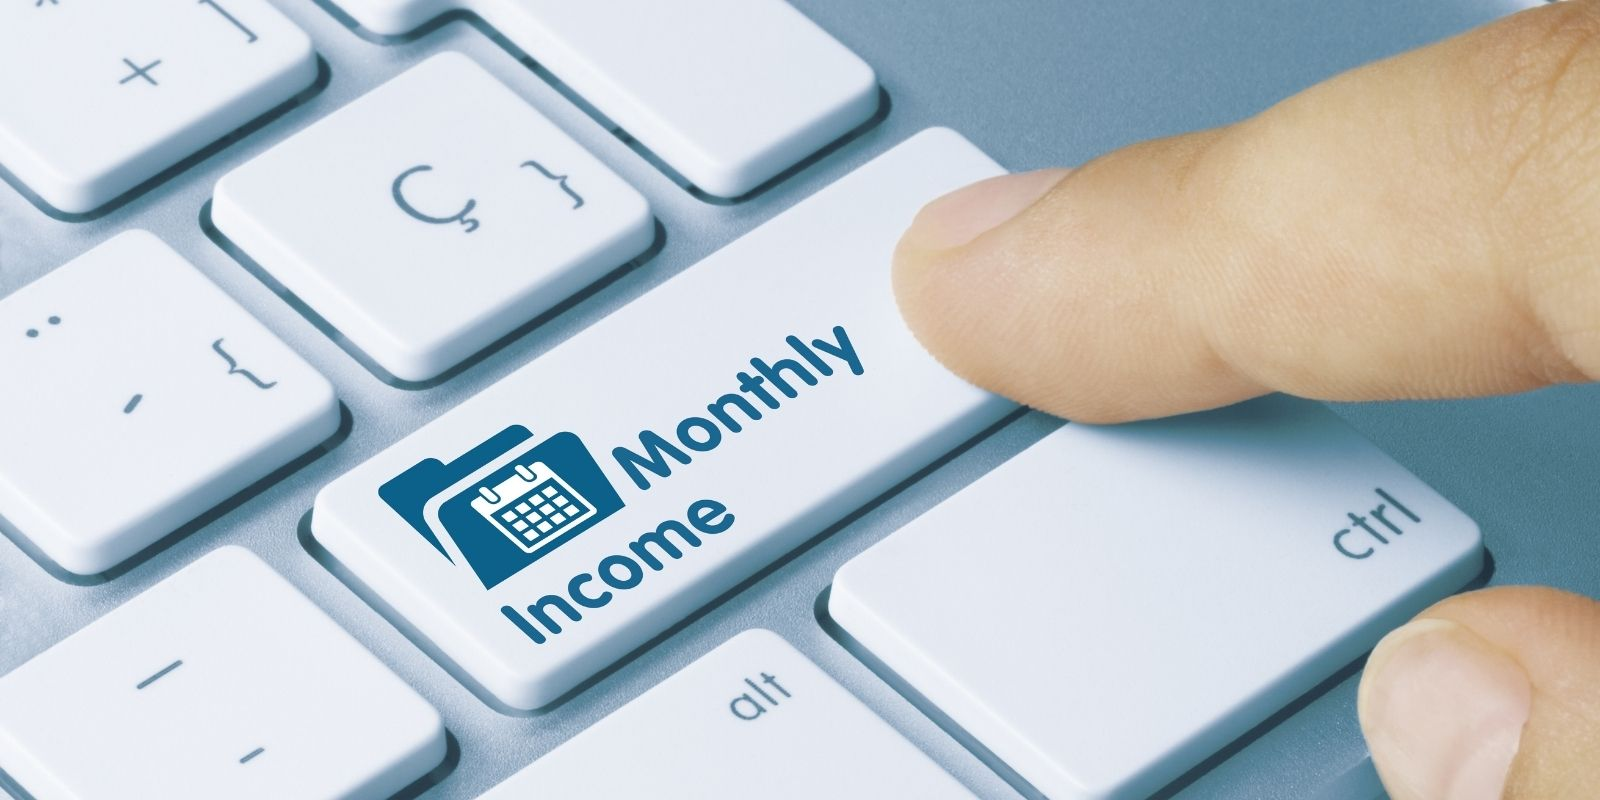 1. Estimate Gross Monthly Income